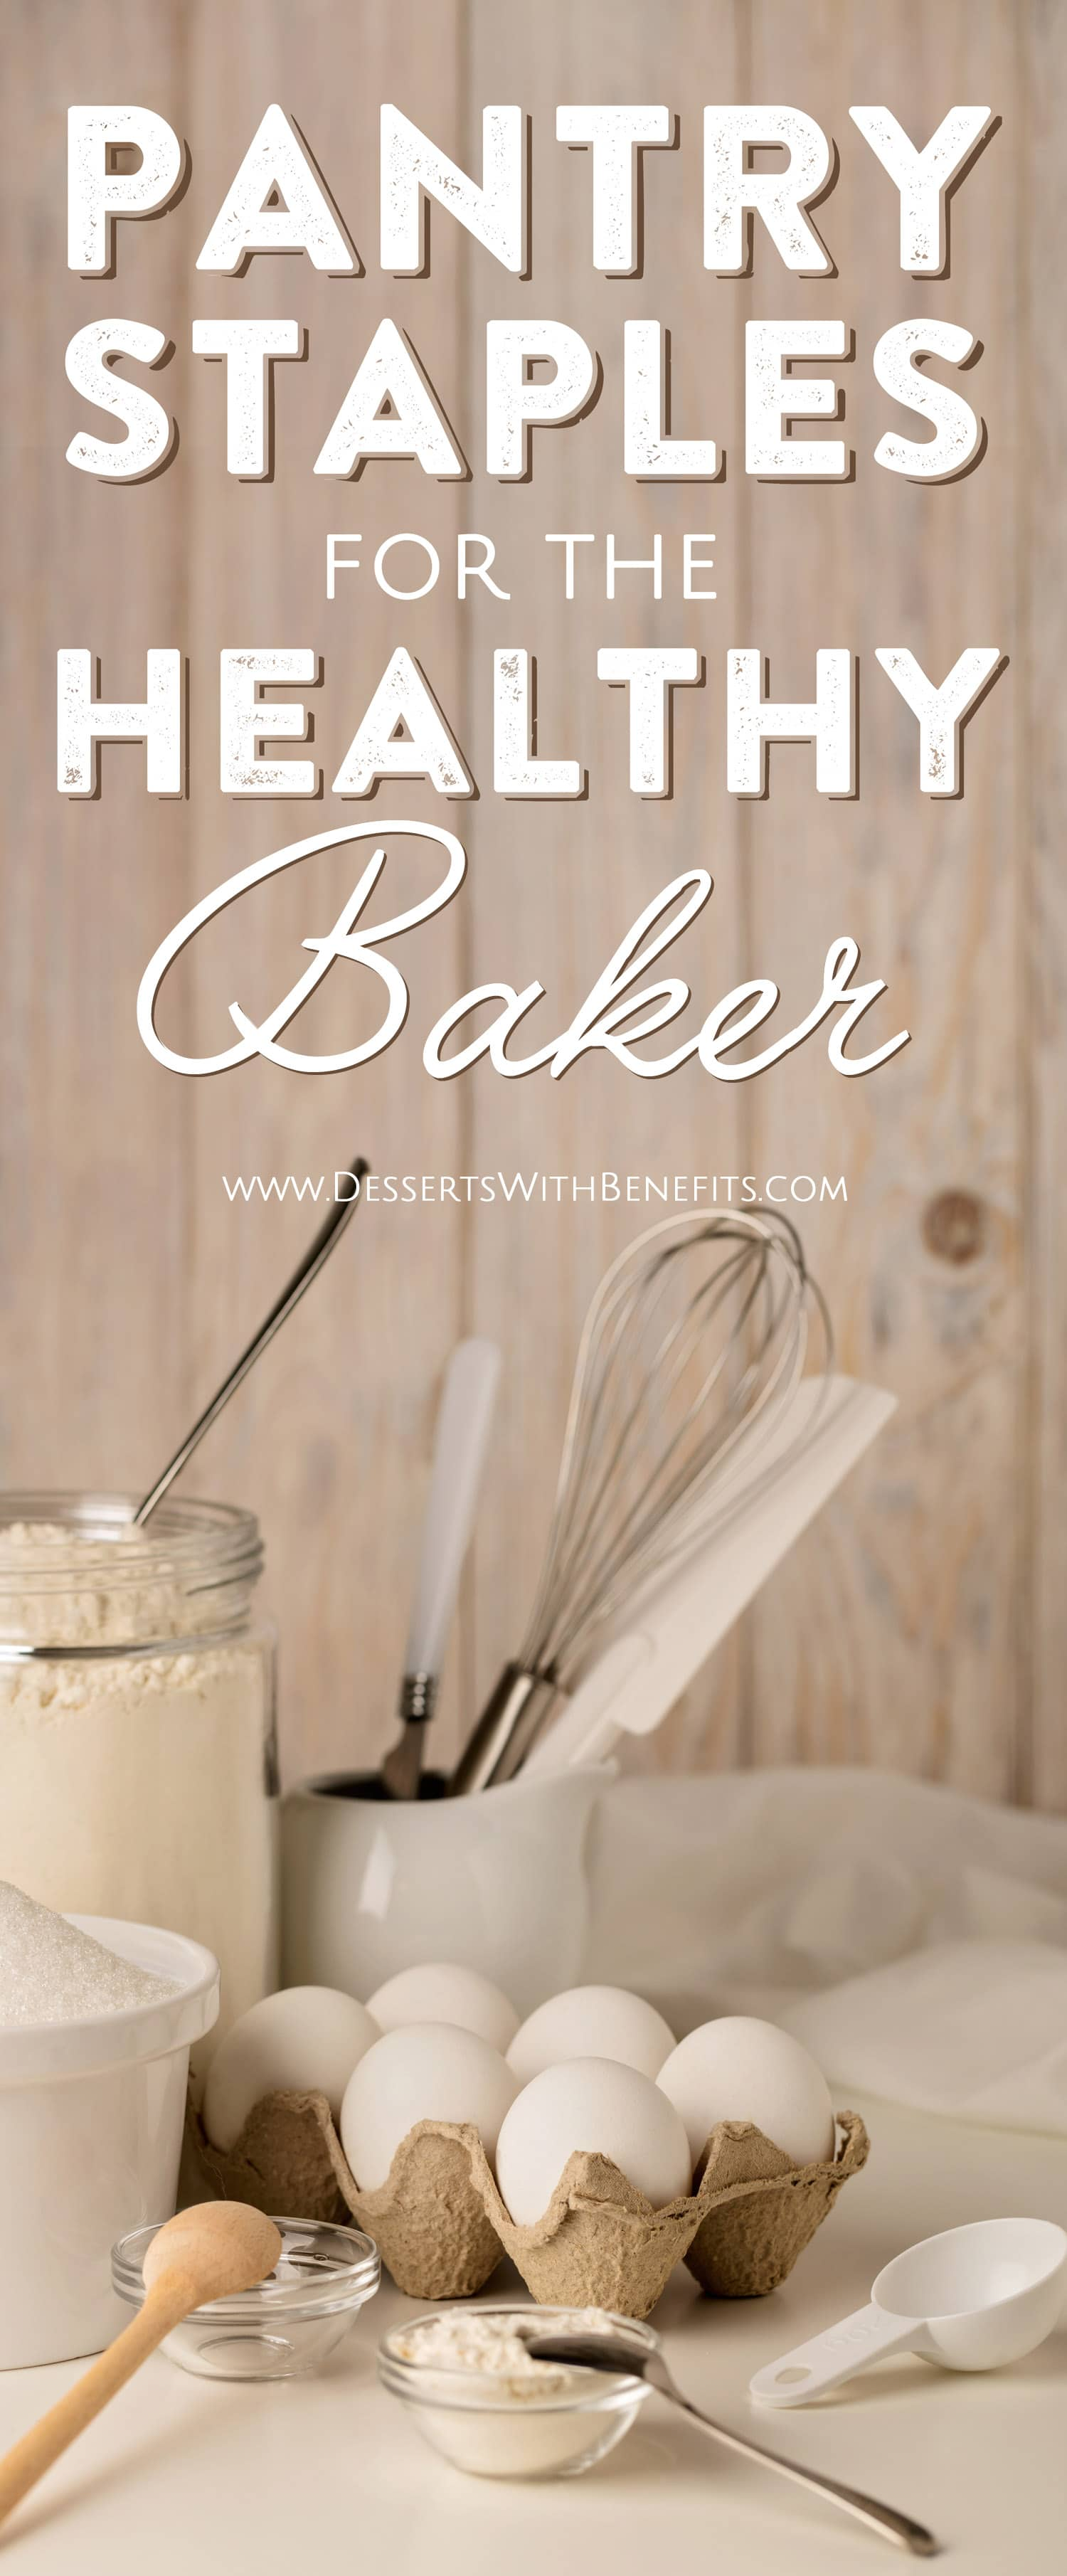 Healthy Pantry Staples for the Healthy Baker: an in-depth look of the ingredients I keep in my pantry, fridge, and freezer to live a healthy lifestyle and bake delicious sweet treats. If you've ever wondered how you can live a healthy lifestyle with dessert on the side, this is the guide for you! Healthy Dessert Recipes at the Desserts With Benefits Blog (www.DessertsWithBenefits.com)